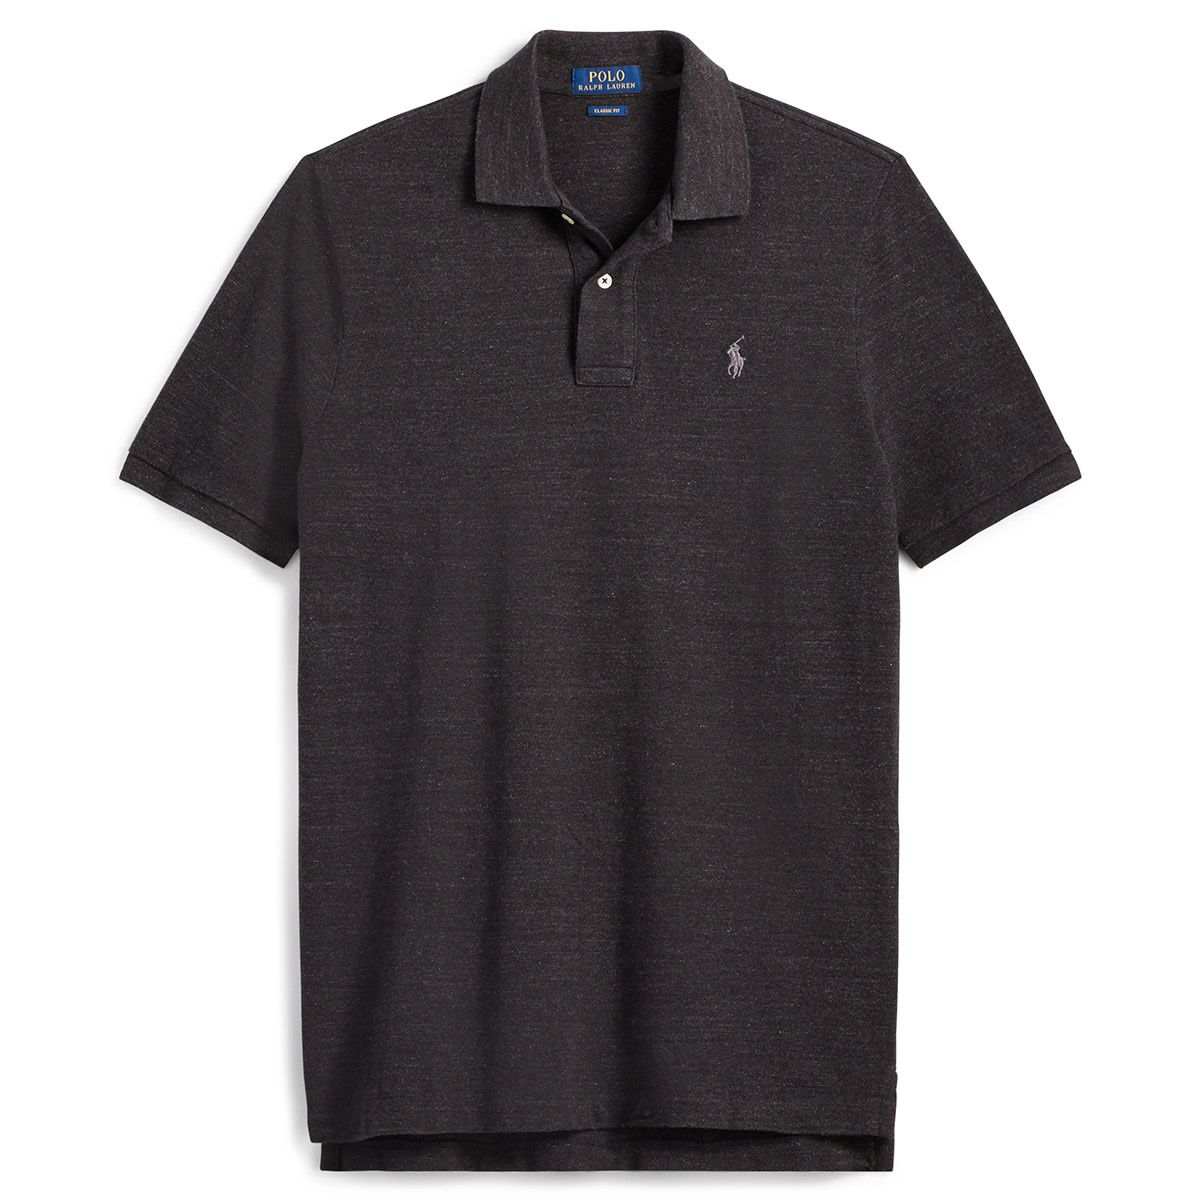 973ca7273 Polo Ralph Lauren Mens Polo Shirts - Macy s